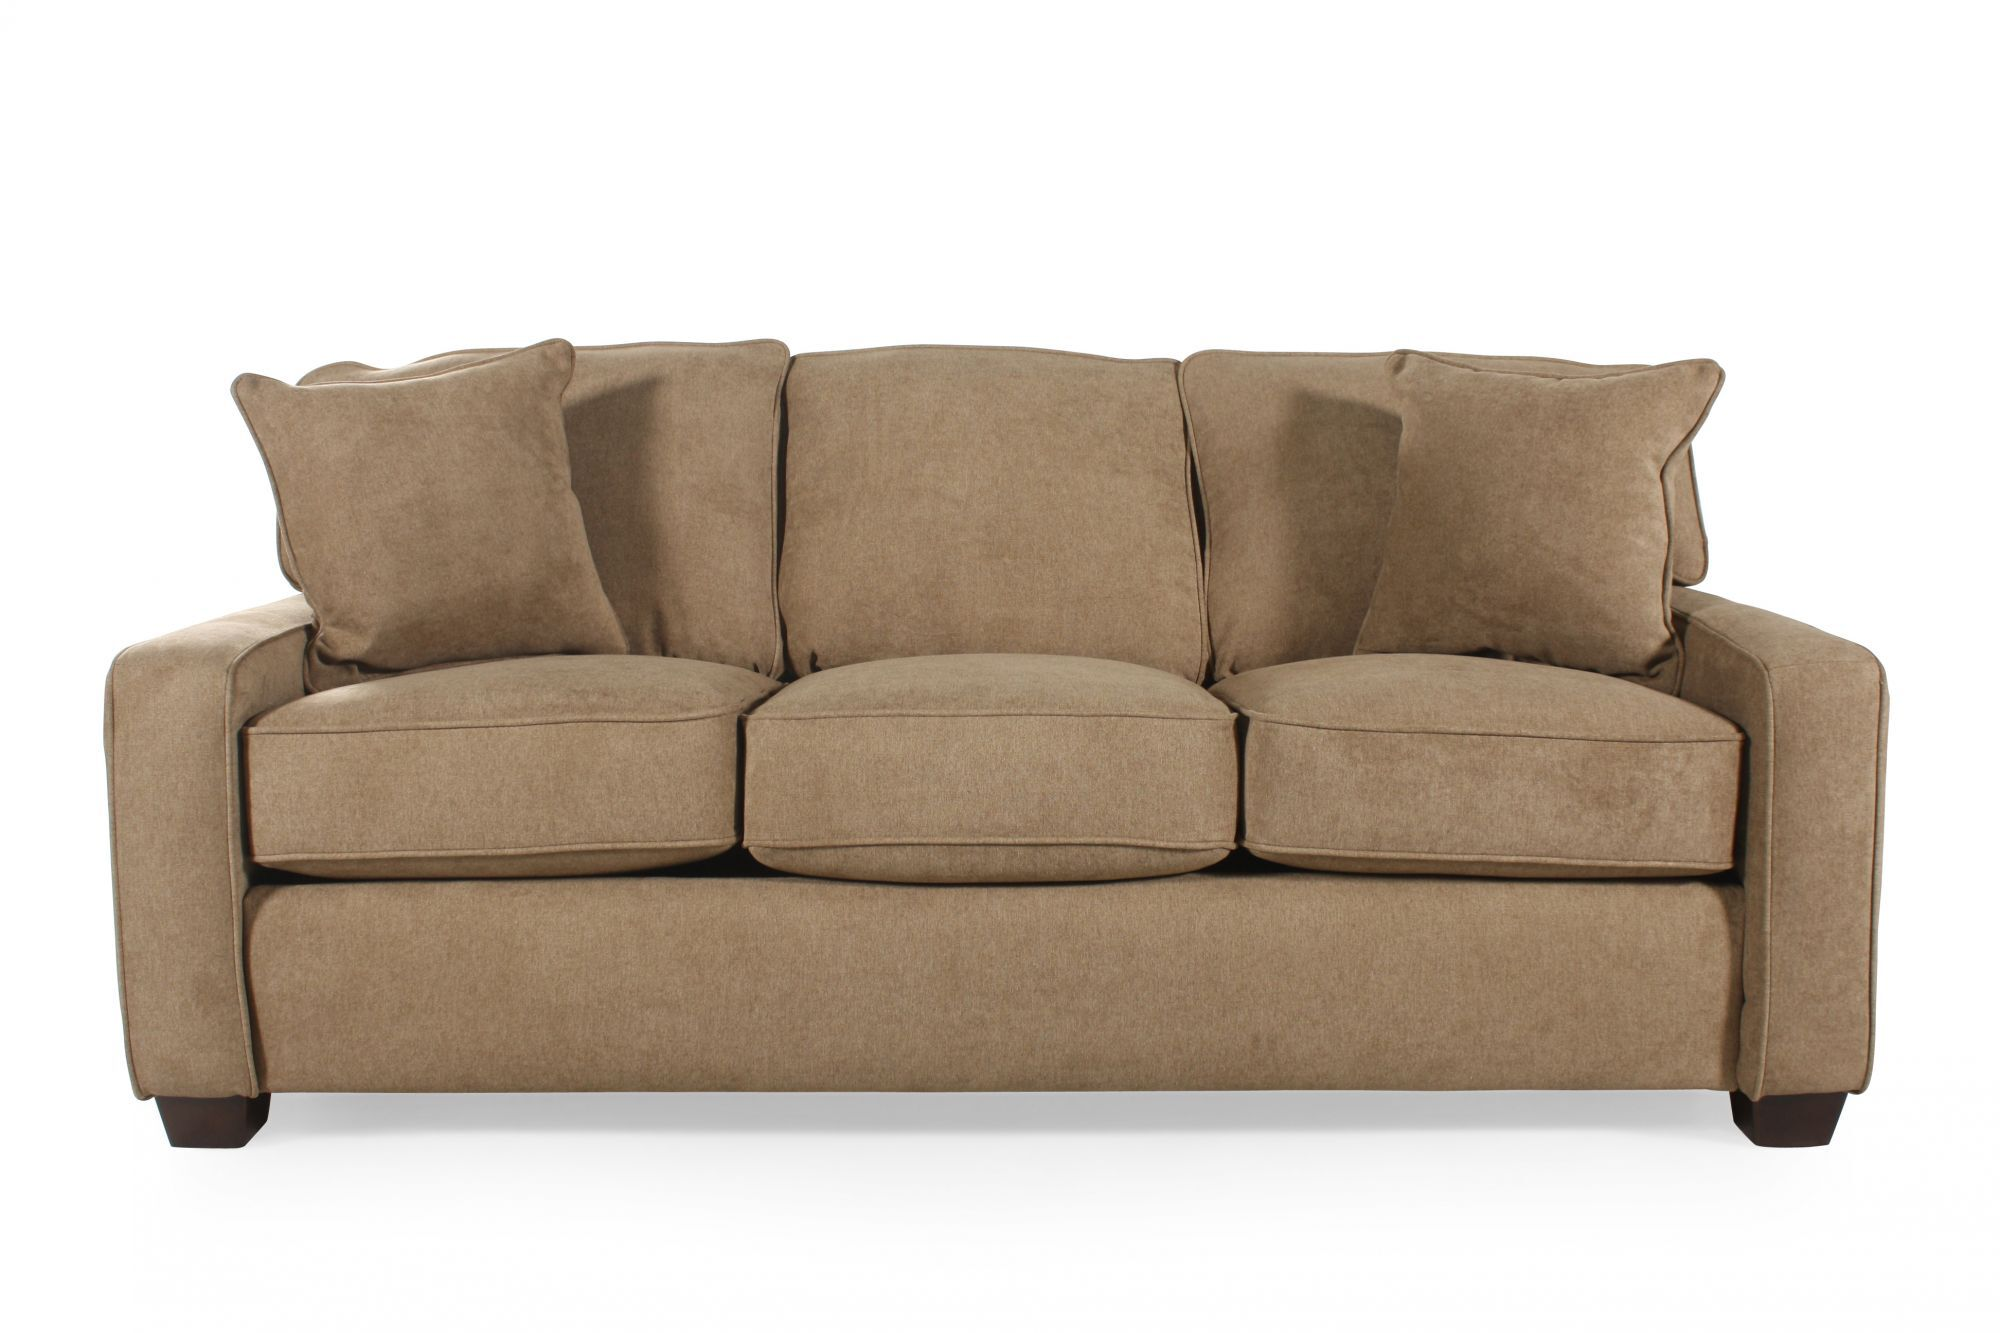 I Rest Queen Sleeper Sofa in Brown   Mathis Brothers Furniture